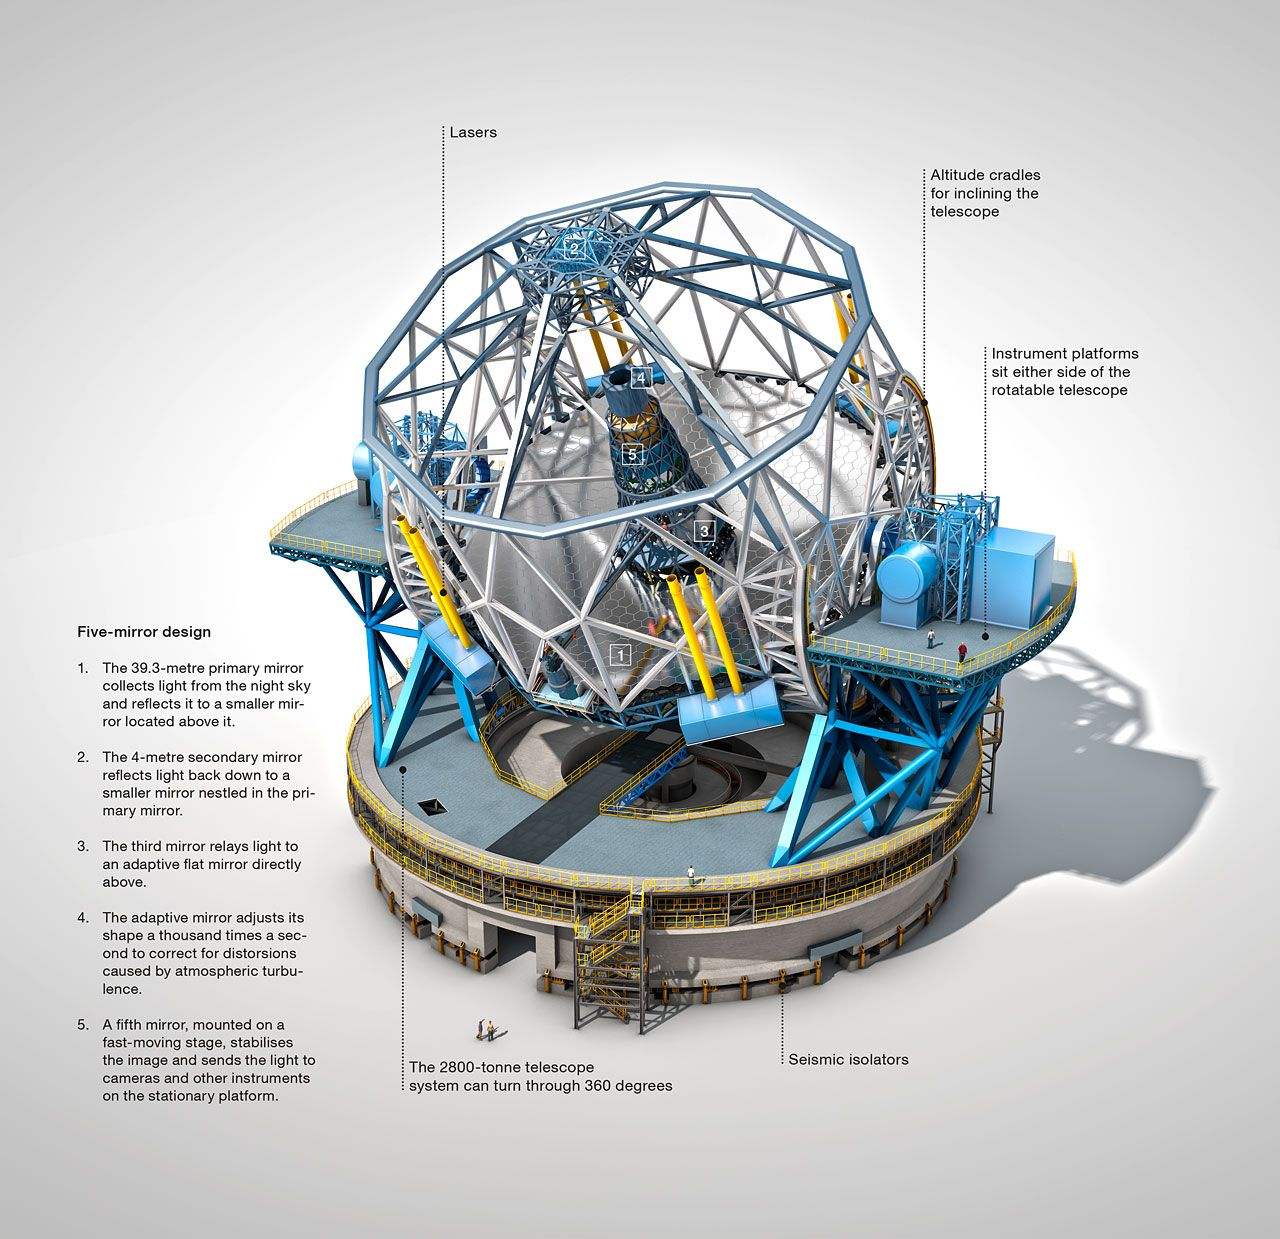 The European Extremely Large Telescope (E-ELT), with a ...